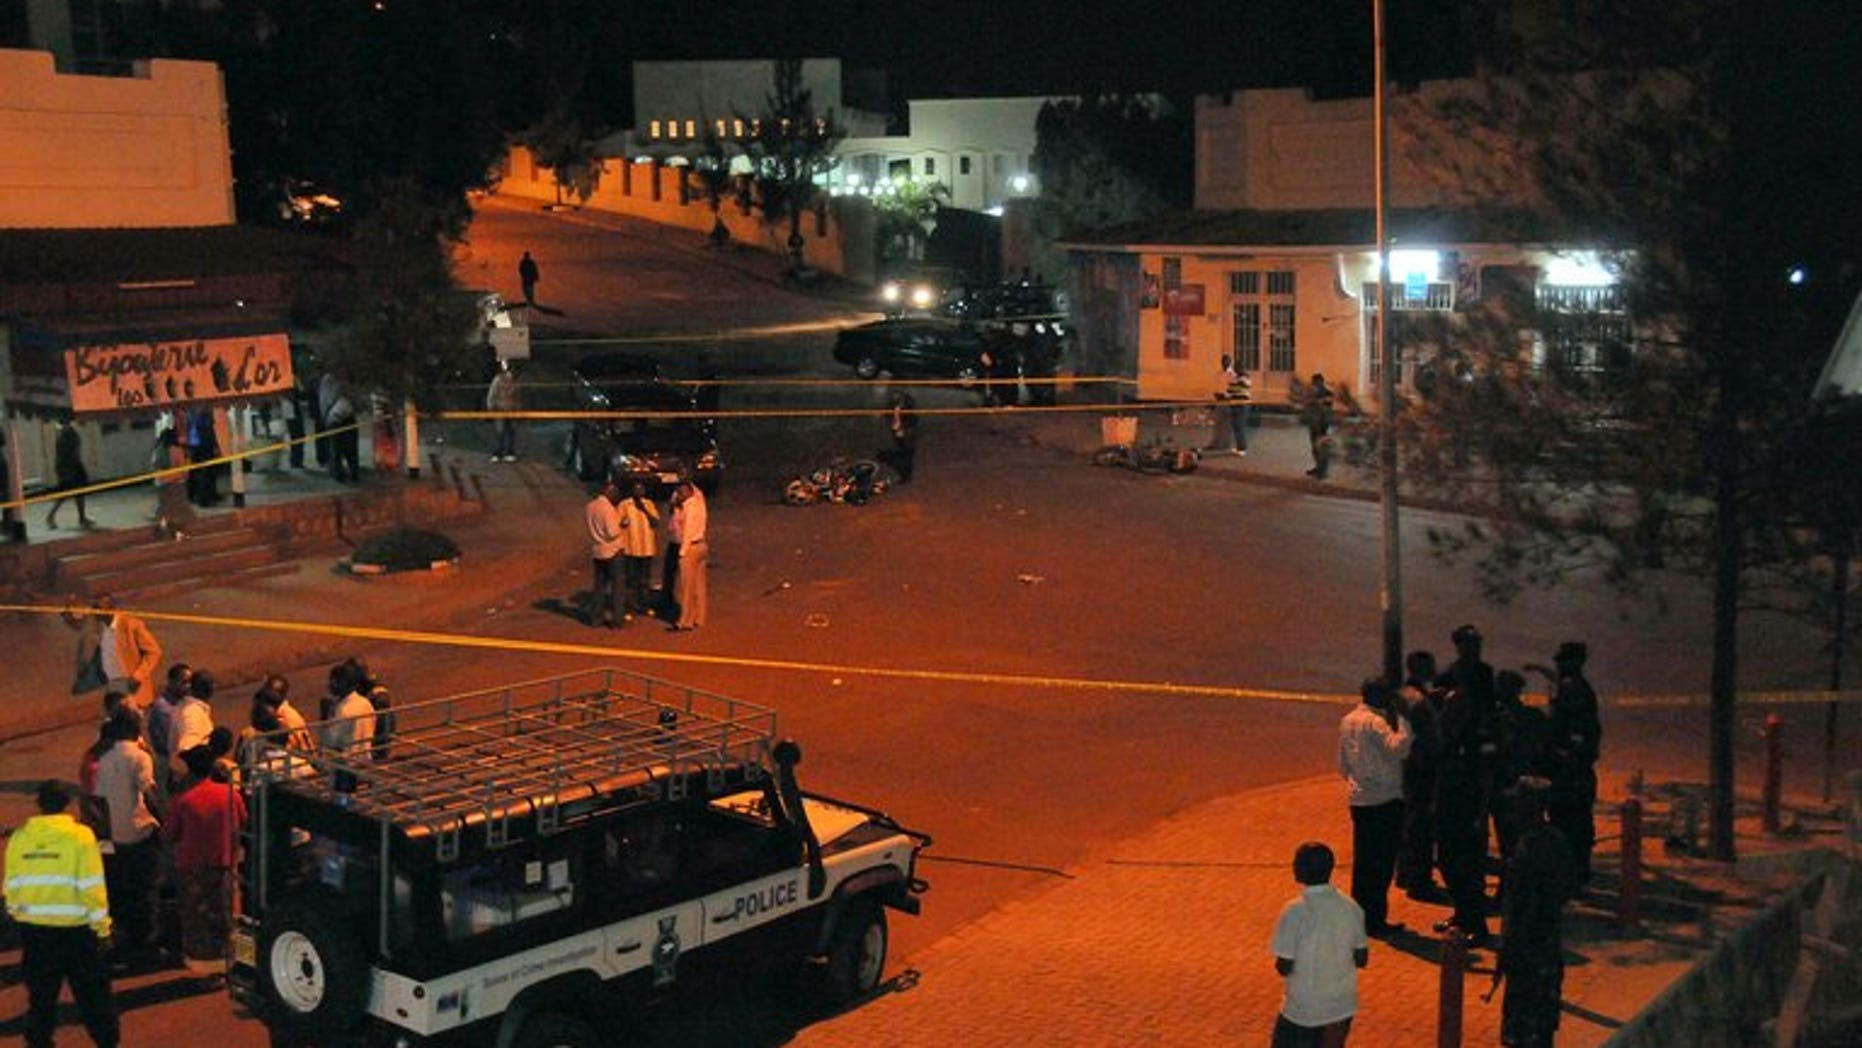 Rwanda National Police forensic officers examine the site of a grenade blast in the city-center of Kigali on March 30, 2012. A grenade attack in the Rwandan capital Kigali killed three people, police said Saturday, after a third victim succumbed to his injuries.